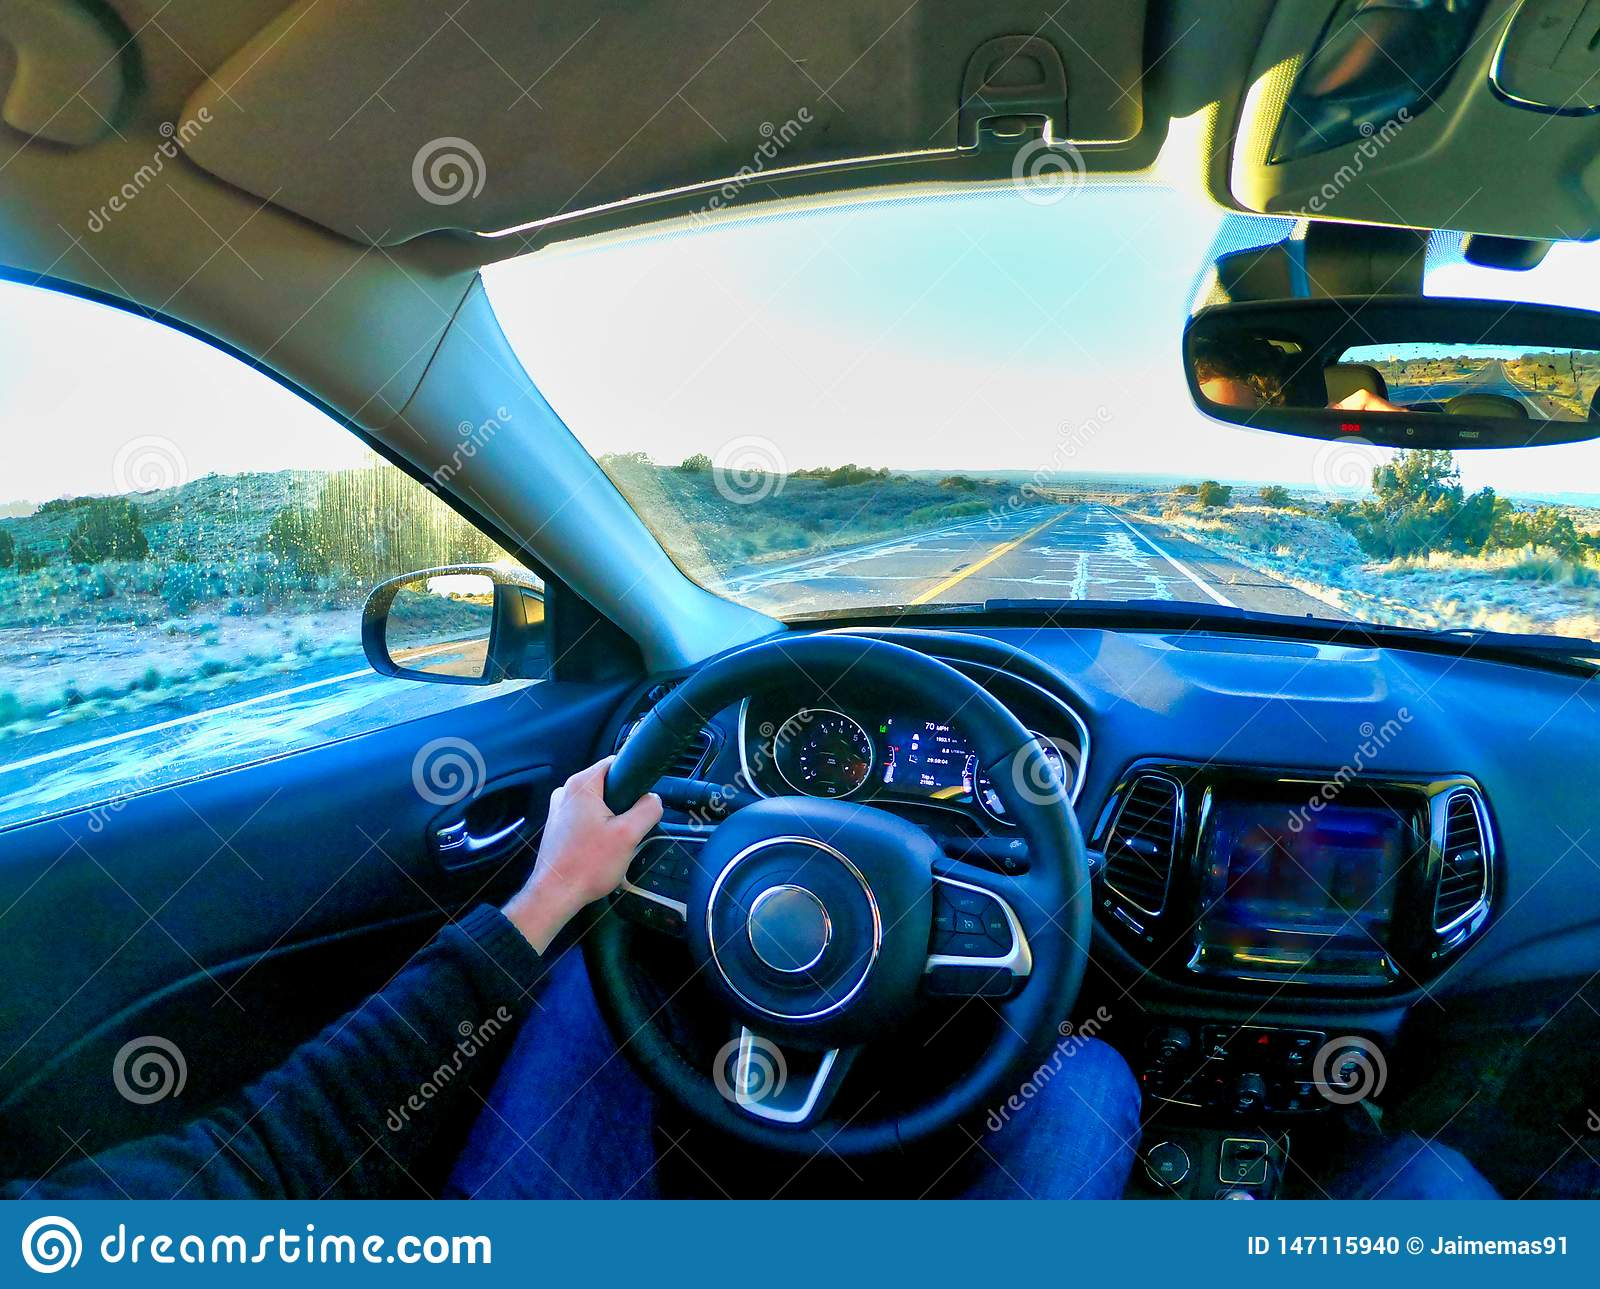 Los angeles, california, usa, 15/04/2019 man driving a car in america